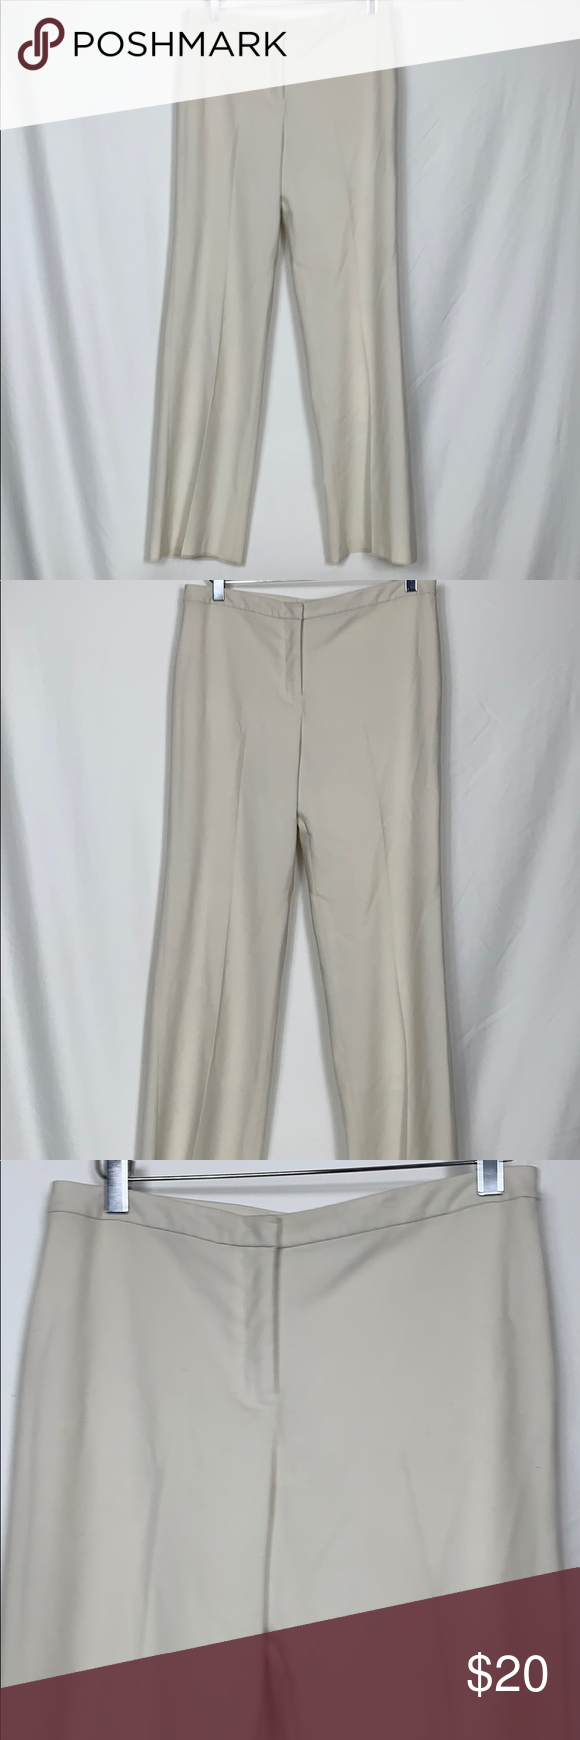 Express Stretch Cream Colored Pants Size 7 8 Cream Colored Pants Size 7 8 Has Stretch To Them 63 Polyester 31 Viscose 6 Spandex Has Colored Pants Pants